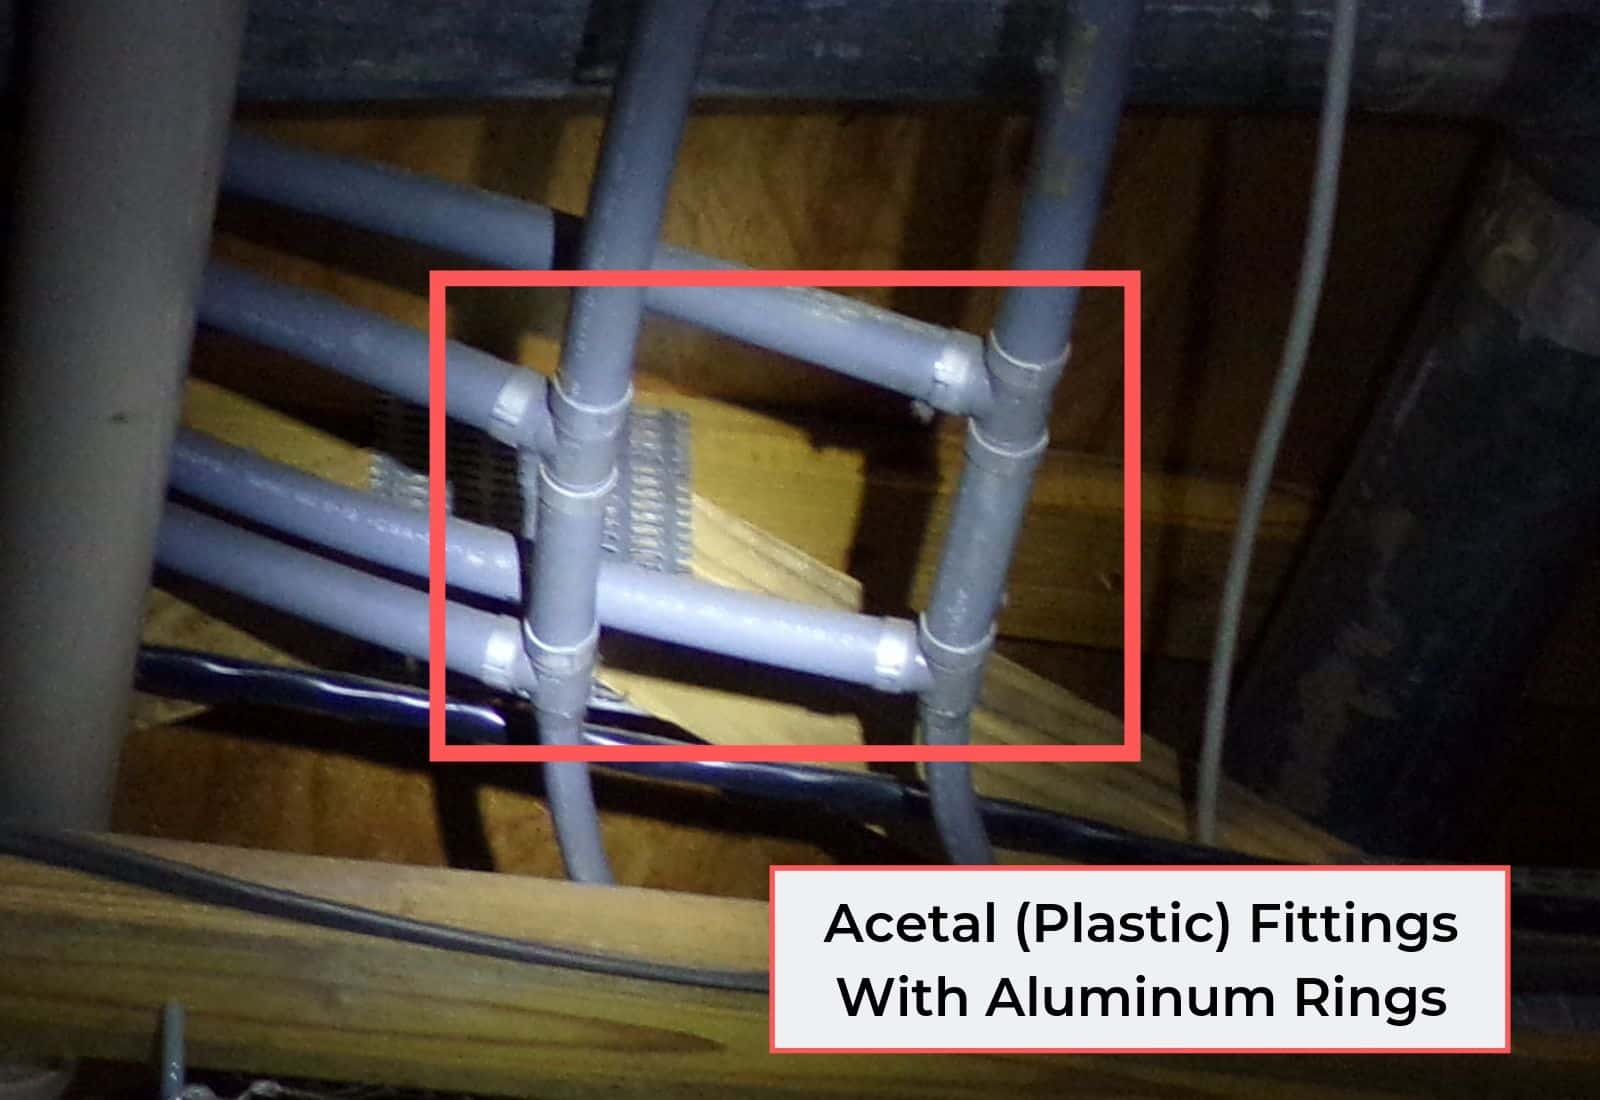 Acetal Fittings With Aluminum Rings (Polybutylene)